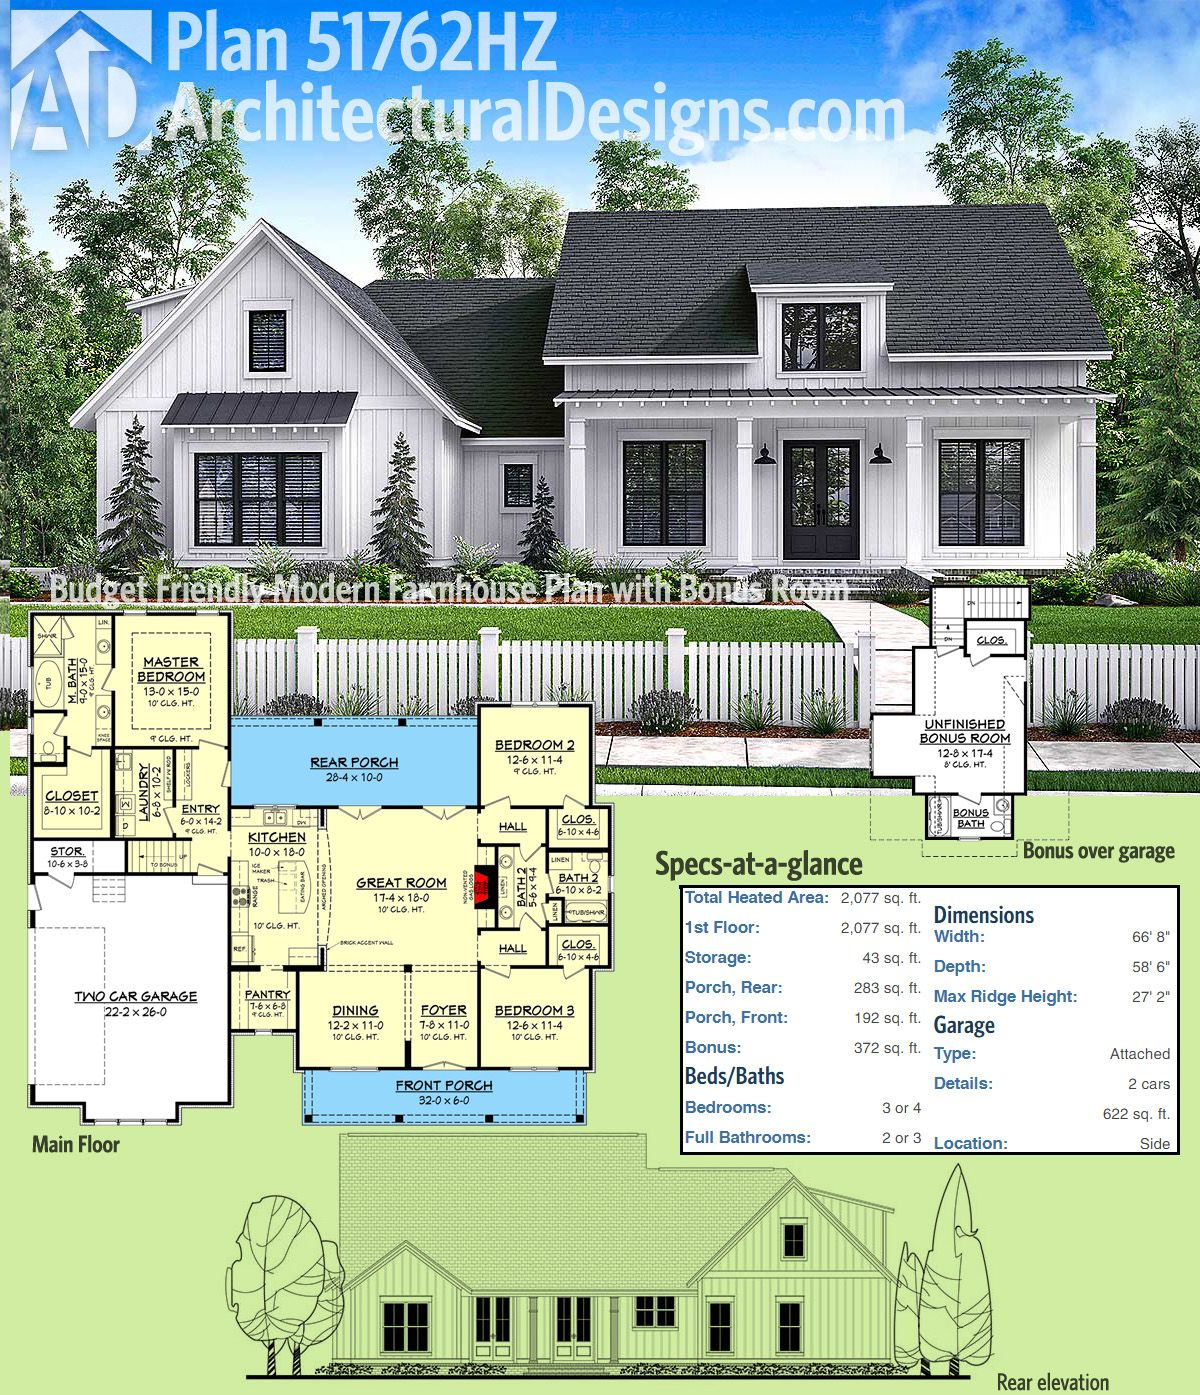 New Simple Home Designs House Design Games New House: Plan 51762HZ: Budget Friendly Modern Farmhouse Plan With